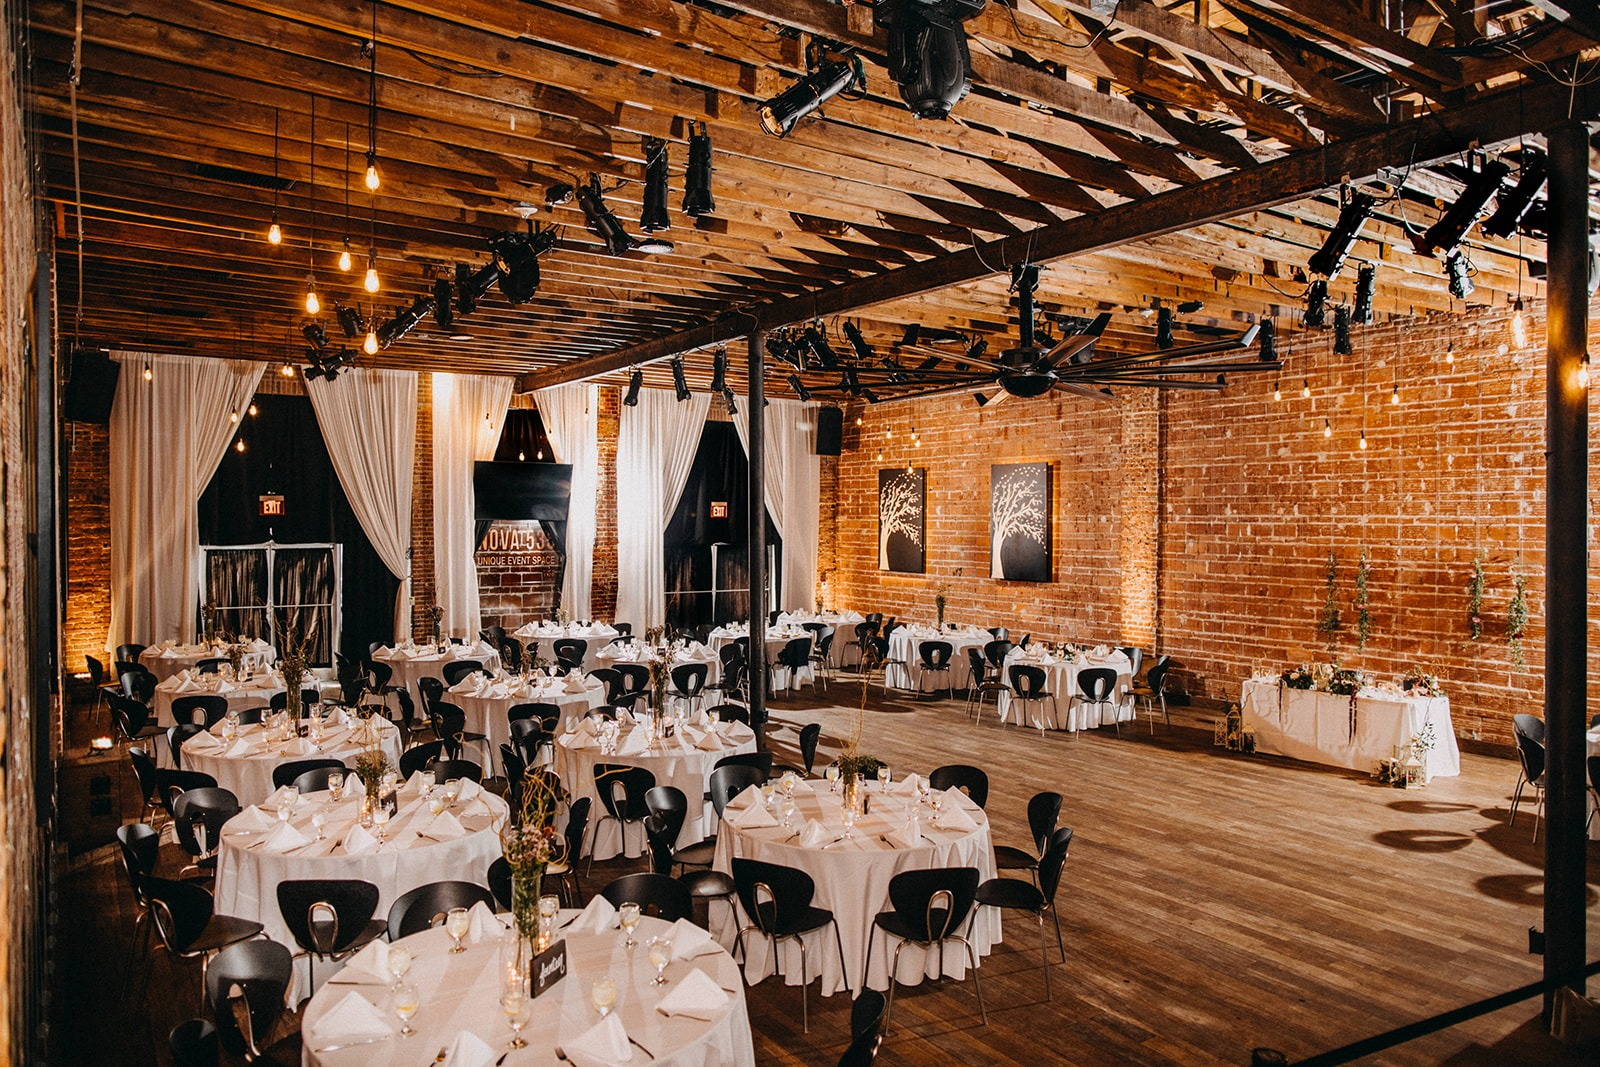 Urban Downtown St Pete Wedding reception with string lights, exposed red brick wall | Historic Florida Wedding Venue NOVA 535